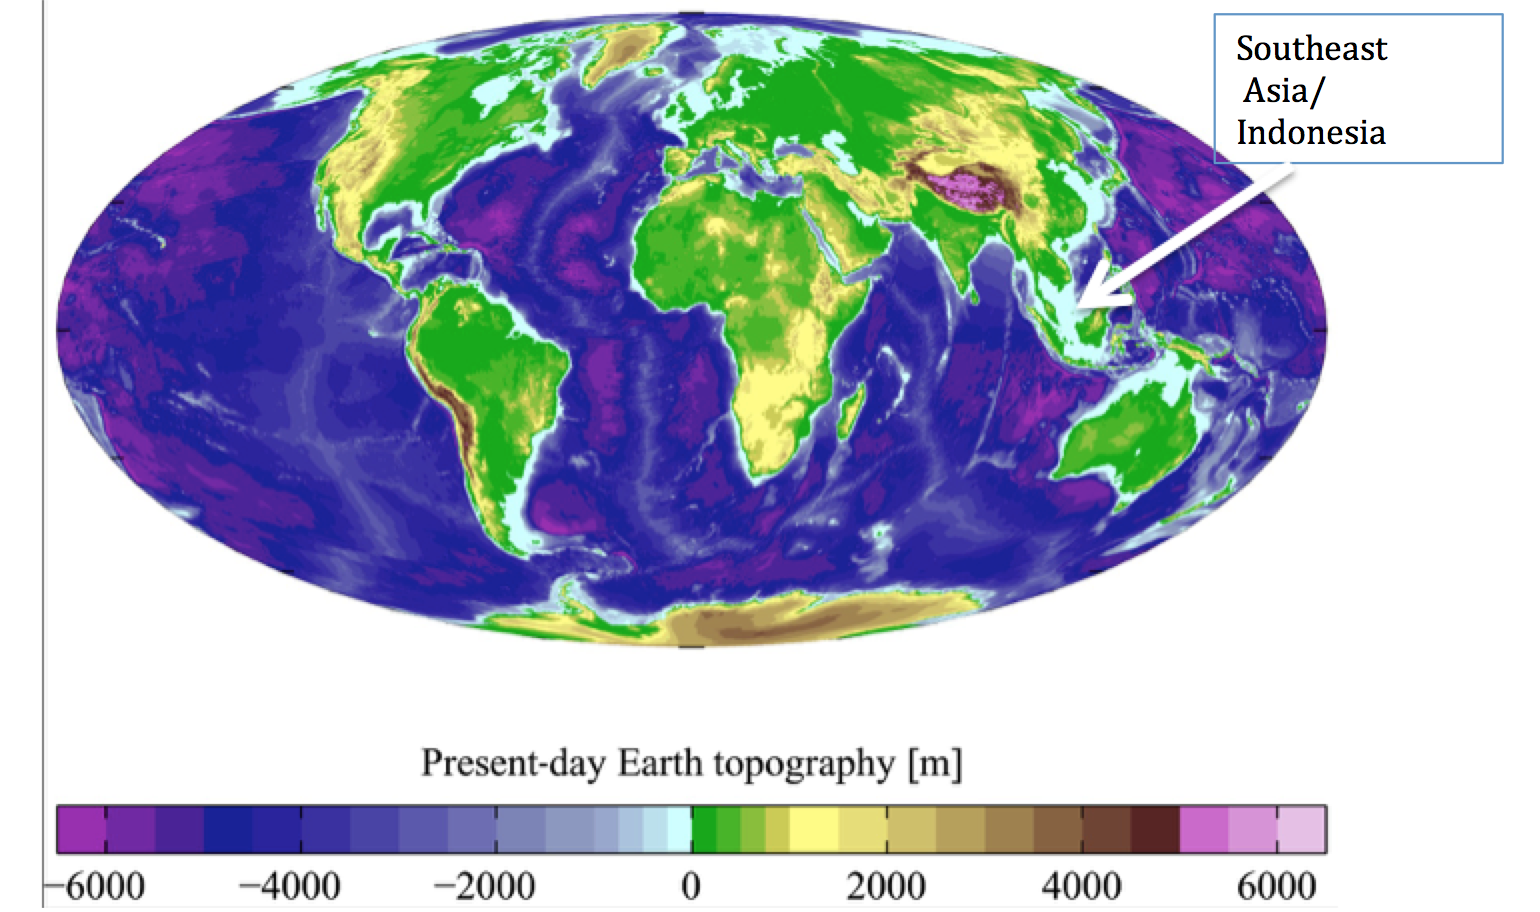 Figure 2. An image of the present day land elevation and sea levels. The light blue colored areas are roughly 100 m deep and would have been exposed land prior to the Younger Dryas period. ( https://en.wikipedia.org/wiki/Bathymetry#/media/File:AYool_topography_15 )